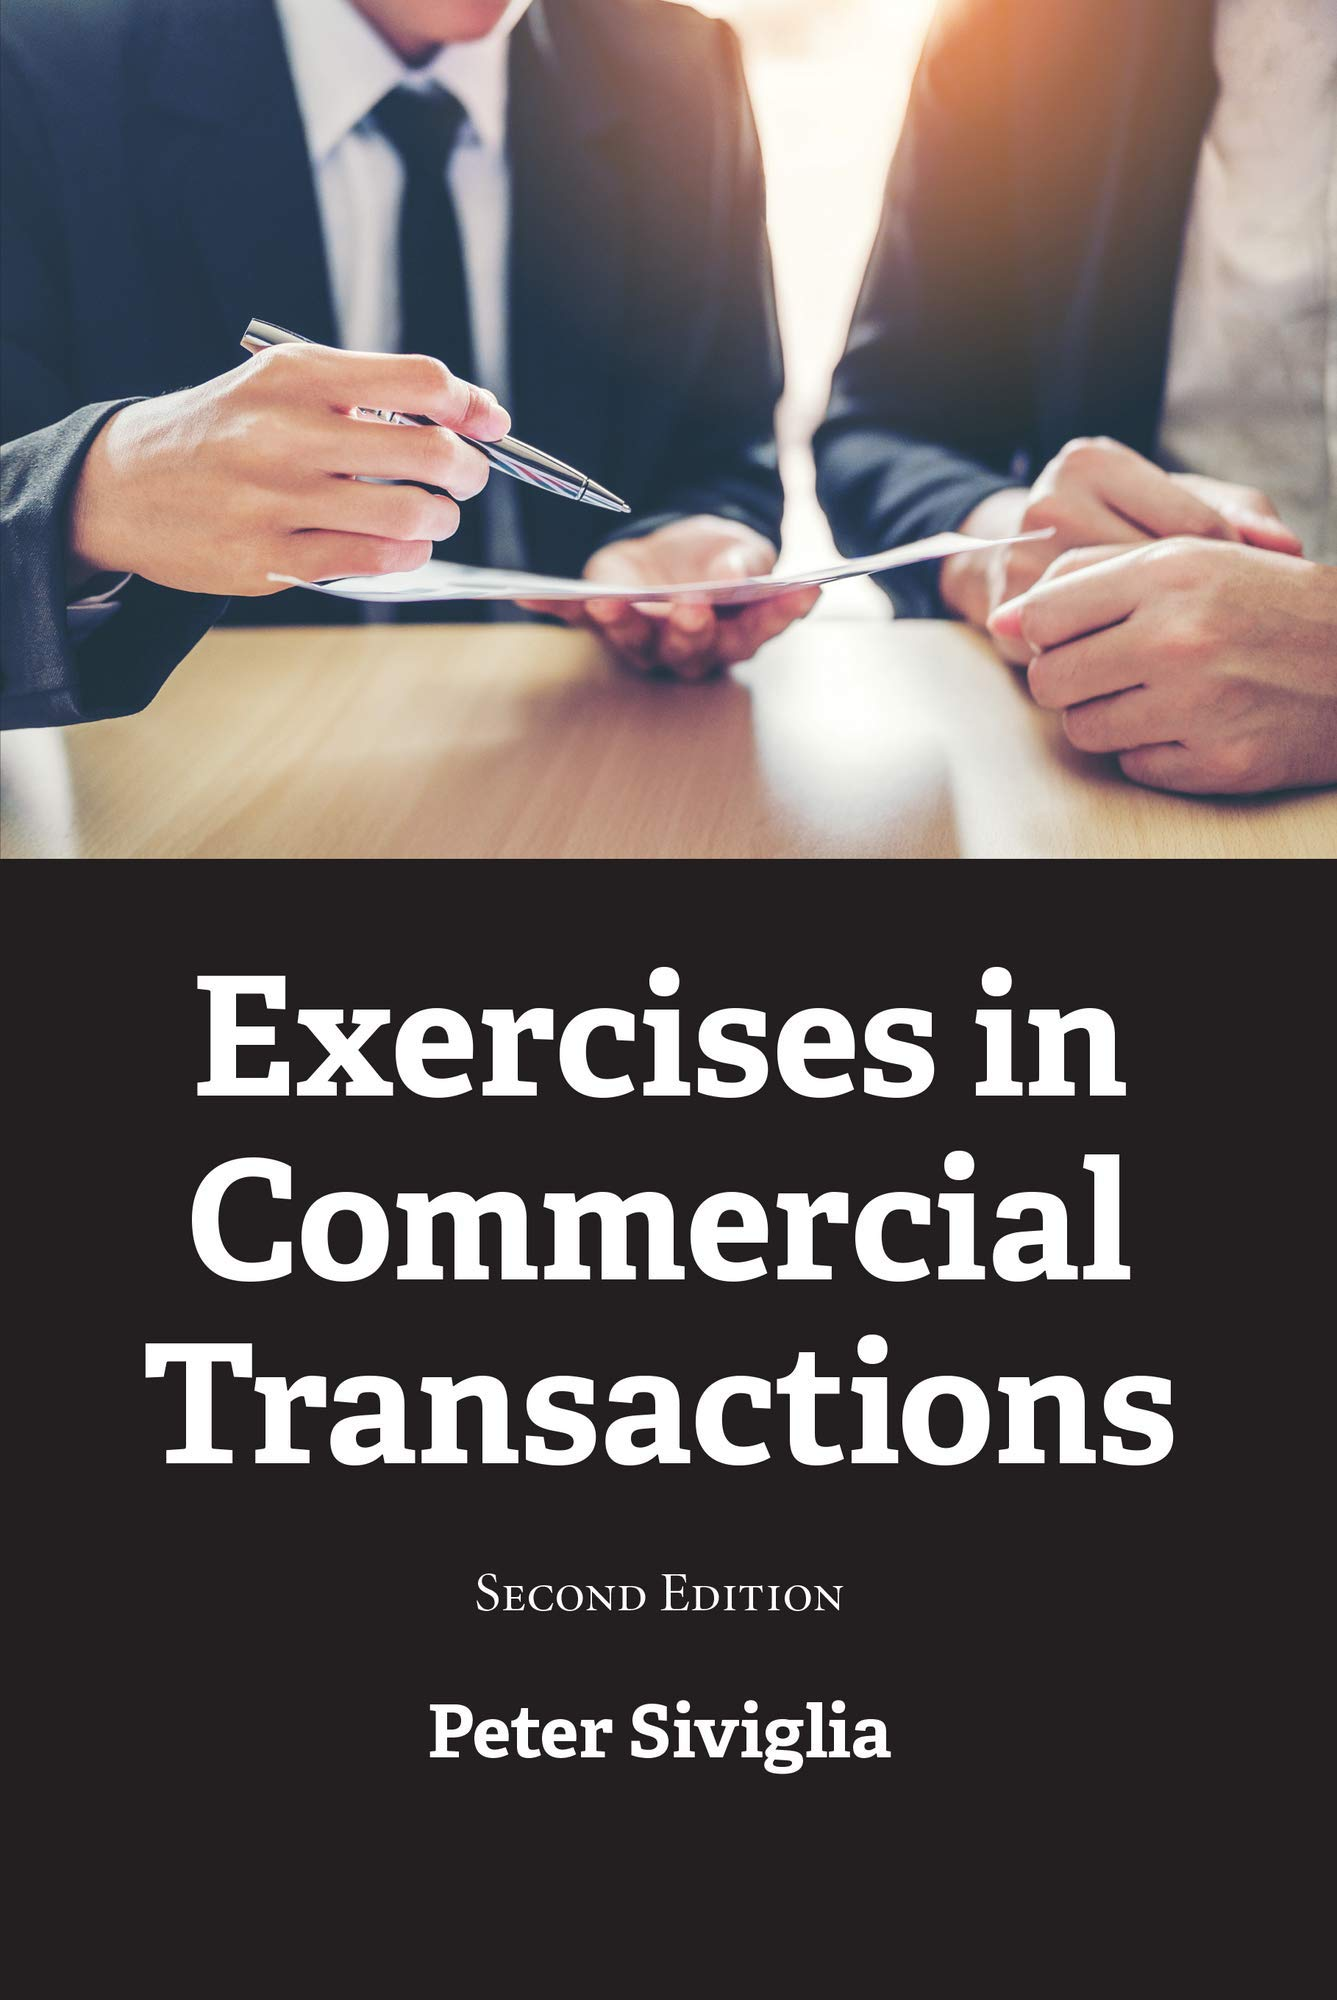 Exercises in Commercial Transactions, Second Edition